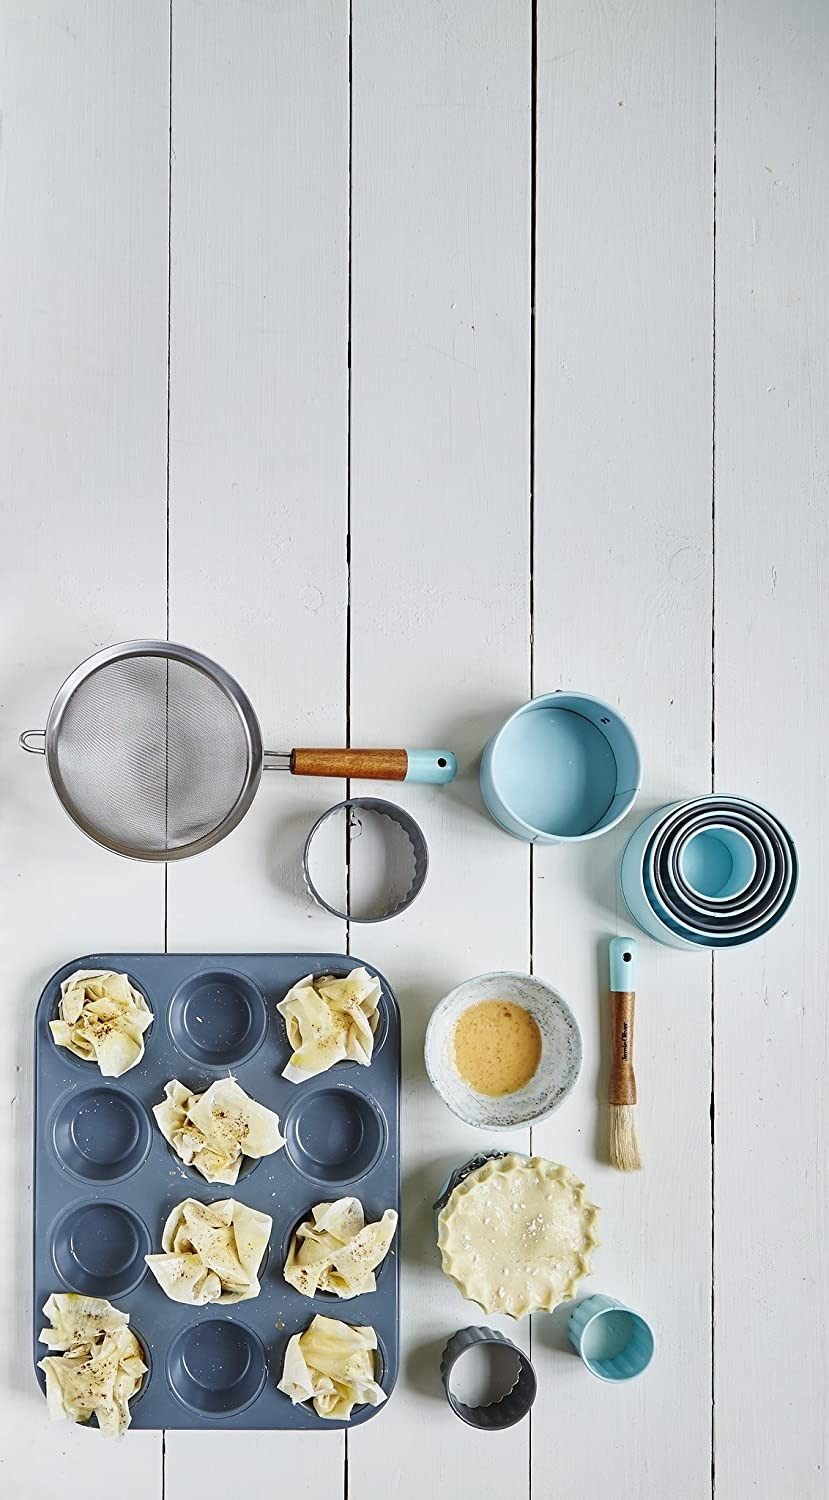 Jamie Oliver Bakeware Range Round Cookie Cutters 5//6//7//8.5//9.5 cm Stainless Steel//Harbour Blue Set of 5